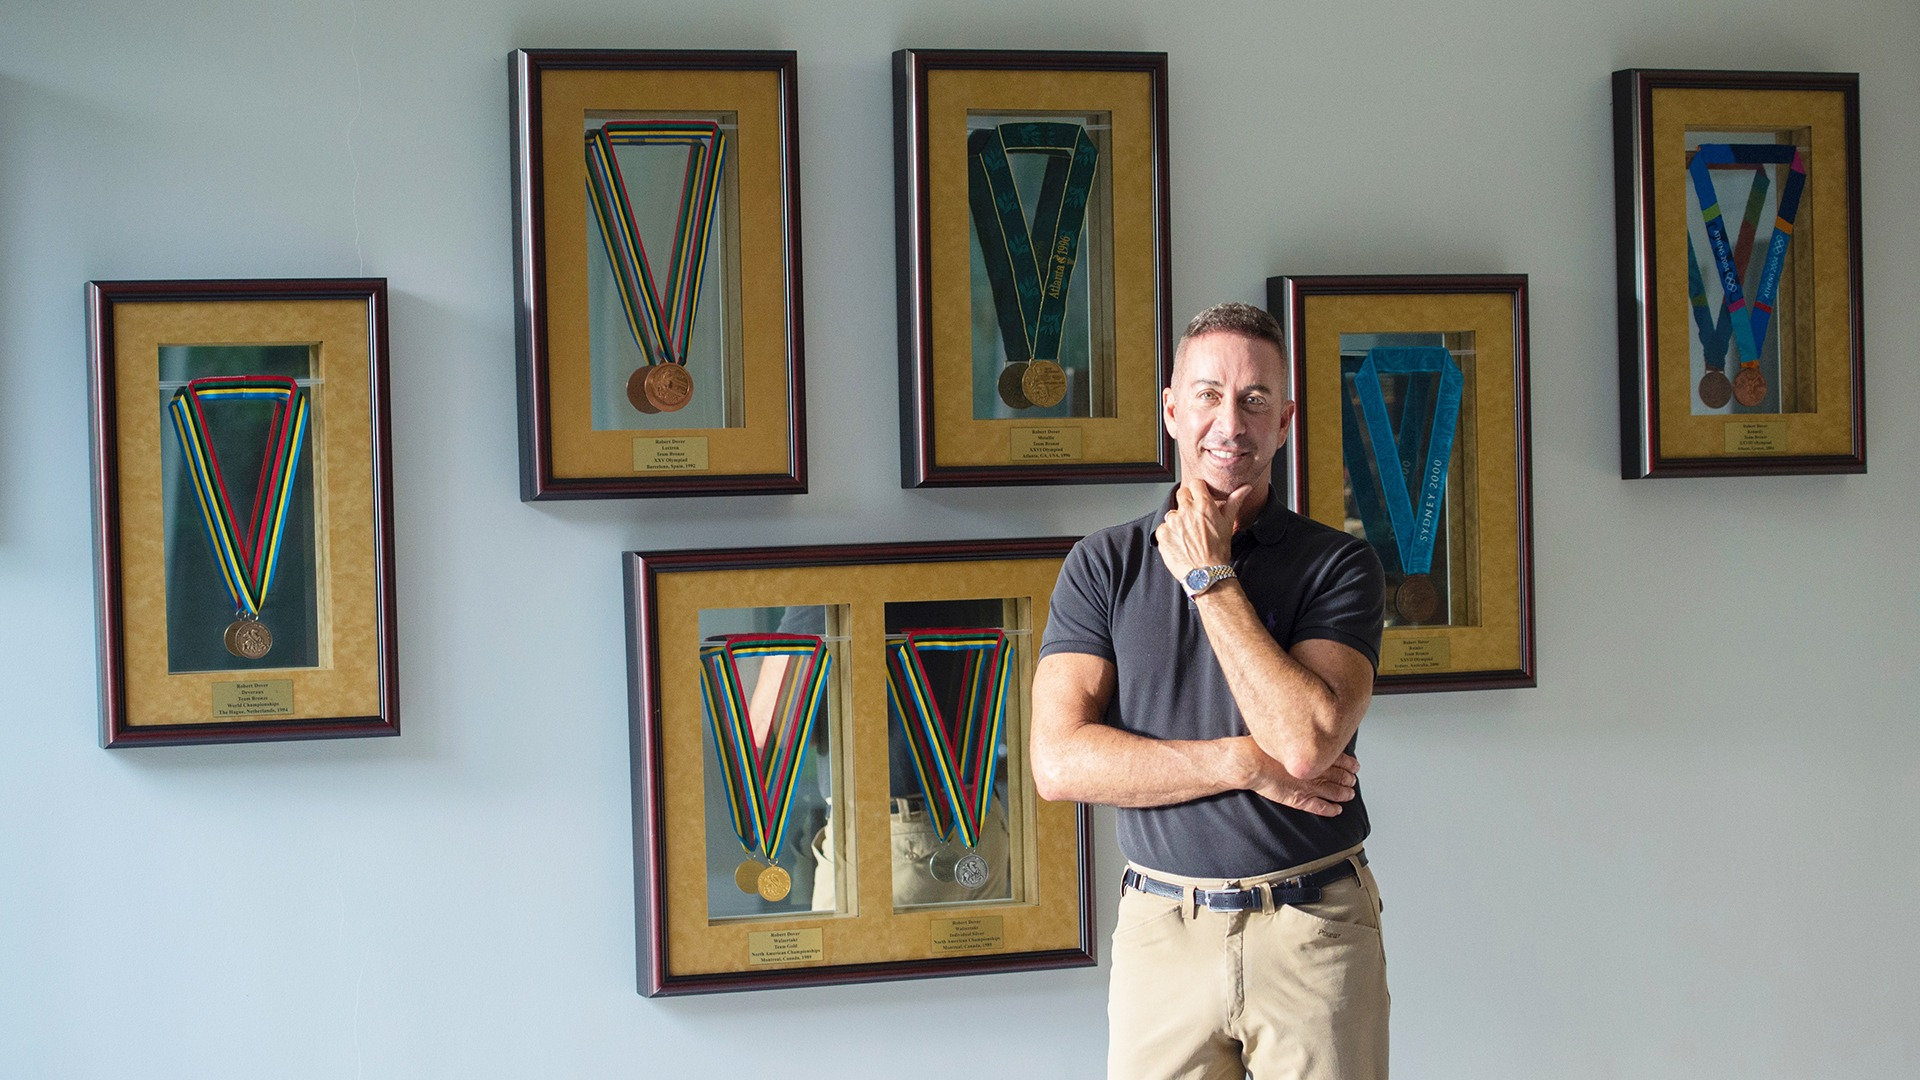 Robert Dover poses in front of his framed medals